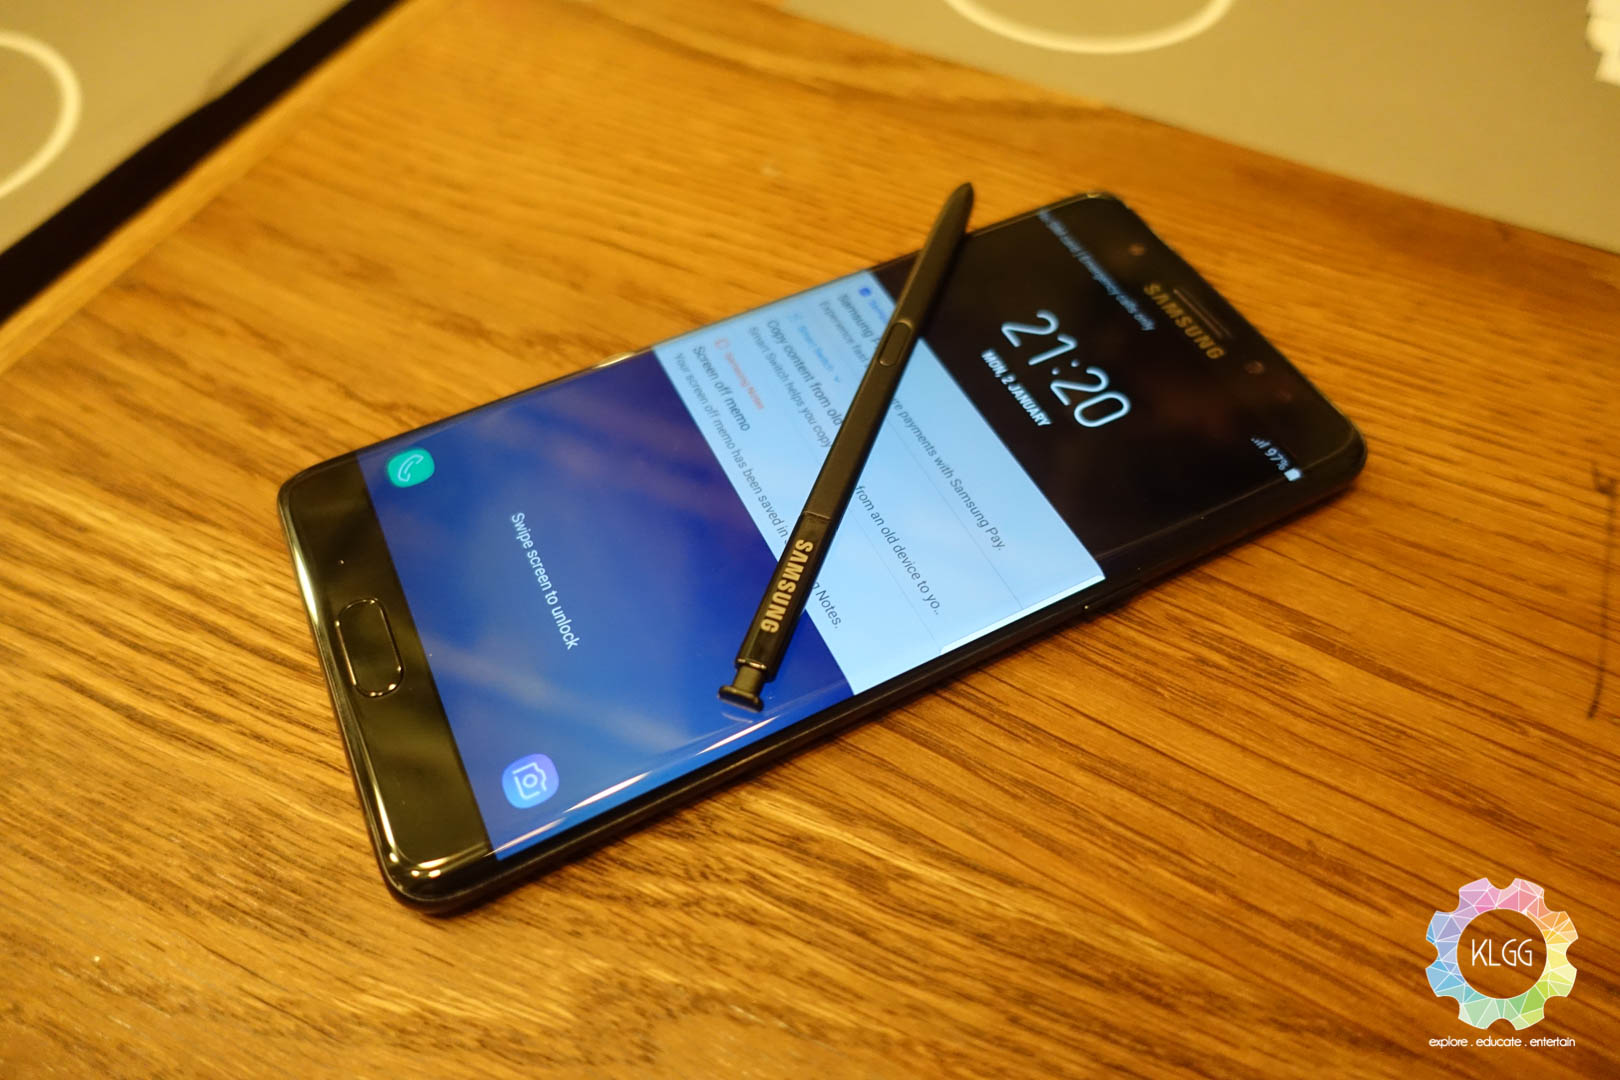 The Samsung Galaxy Note Fe Goes Official For Price Of Rm2599 7 Will Retail And Is Available In Colors Coral Blue Black Onyx Which A Great Alternative If You Dont Want To Pay